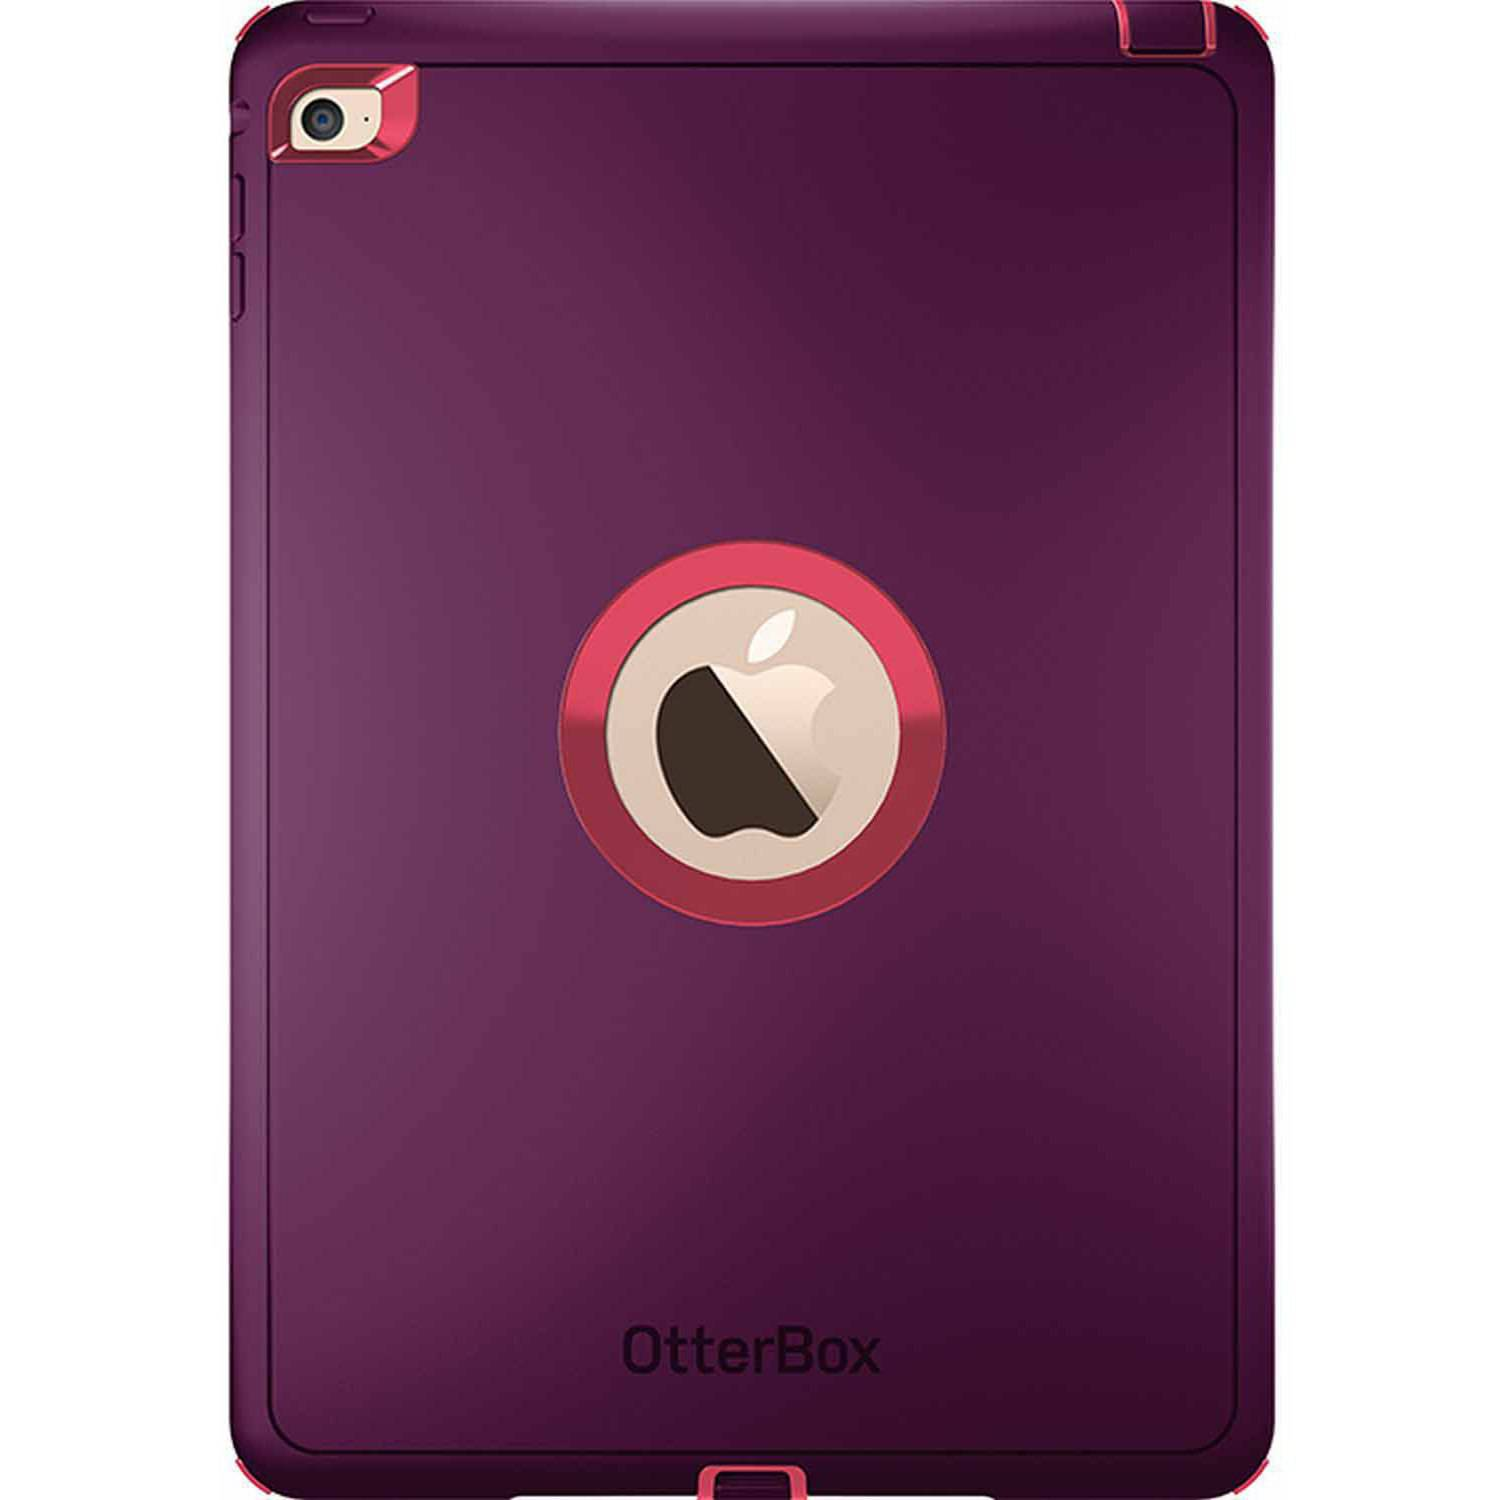 OtterBox Defender Series Case for Apple iPad Air 2, Pink Purple by Otter Products